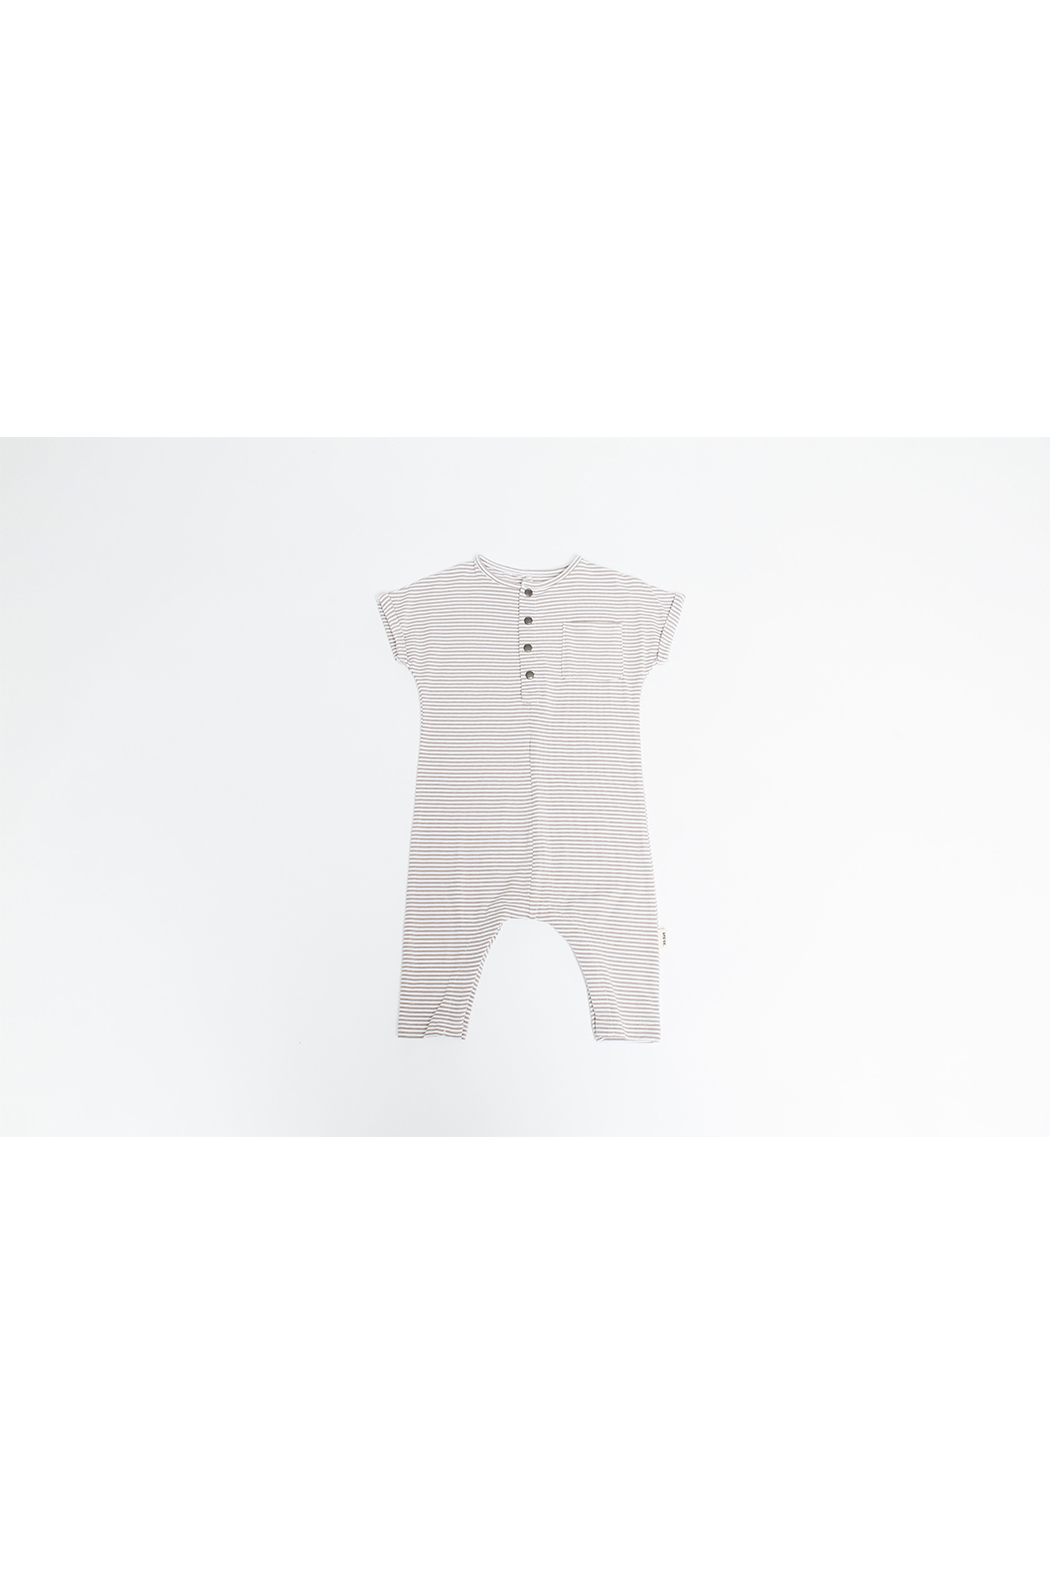 Greige The O.G. Bamboo Romper - Main Image